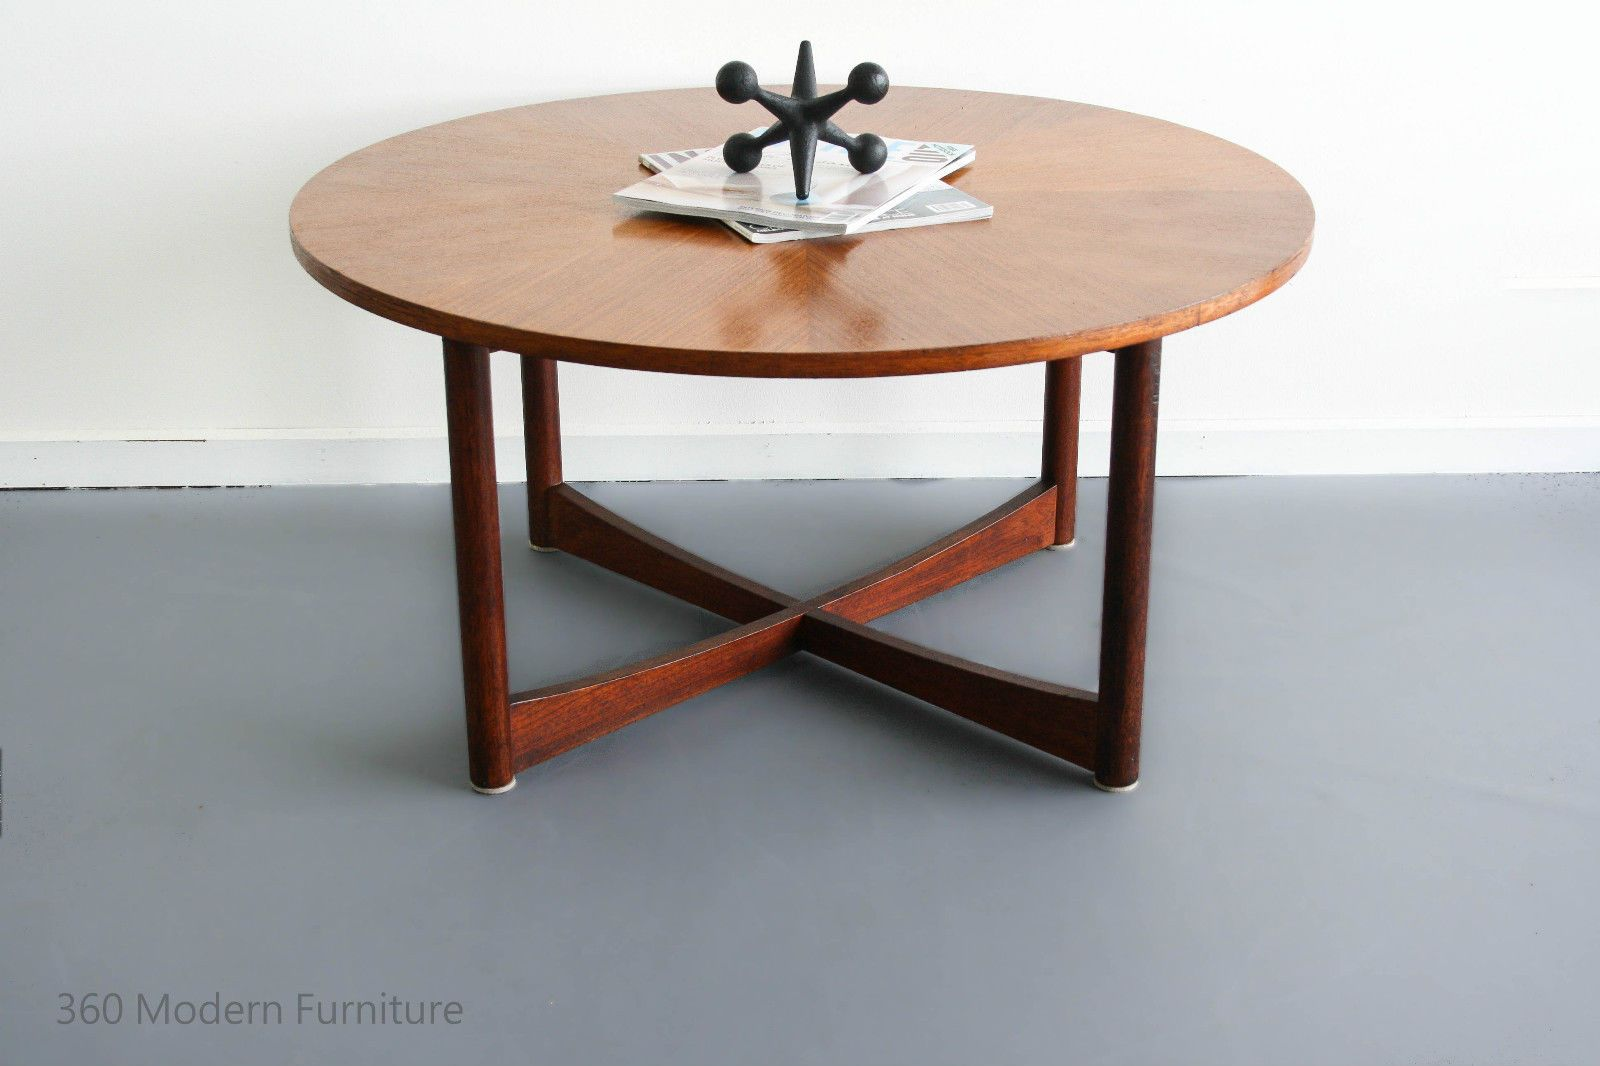 Retro light teak circular glass top coffee table nest of tables by - Mid Century Parker Coffee Table Teak Round Sundial Danish Retro Vintage Scandi In Home Garden Furniture Tables